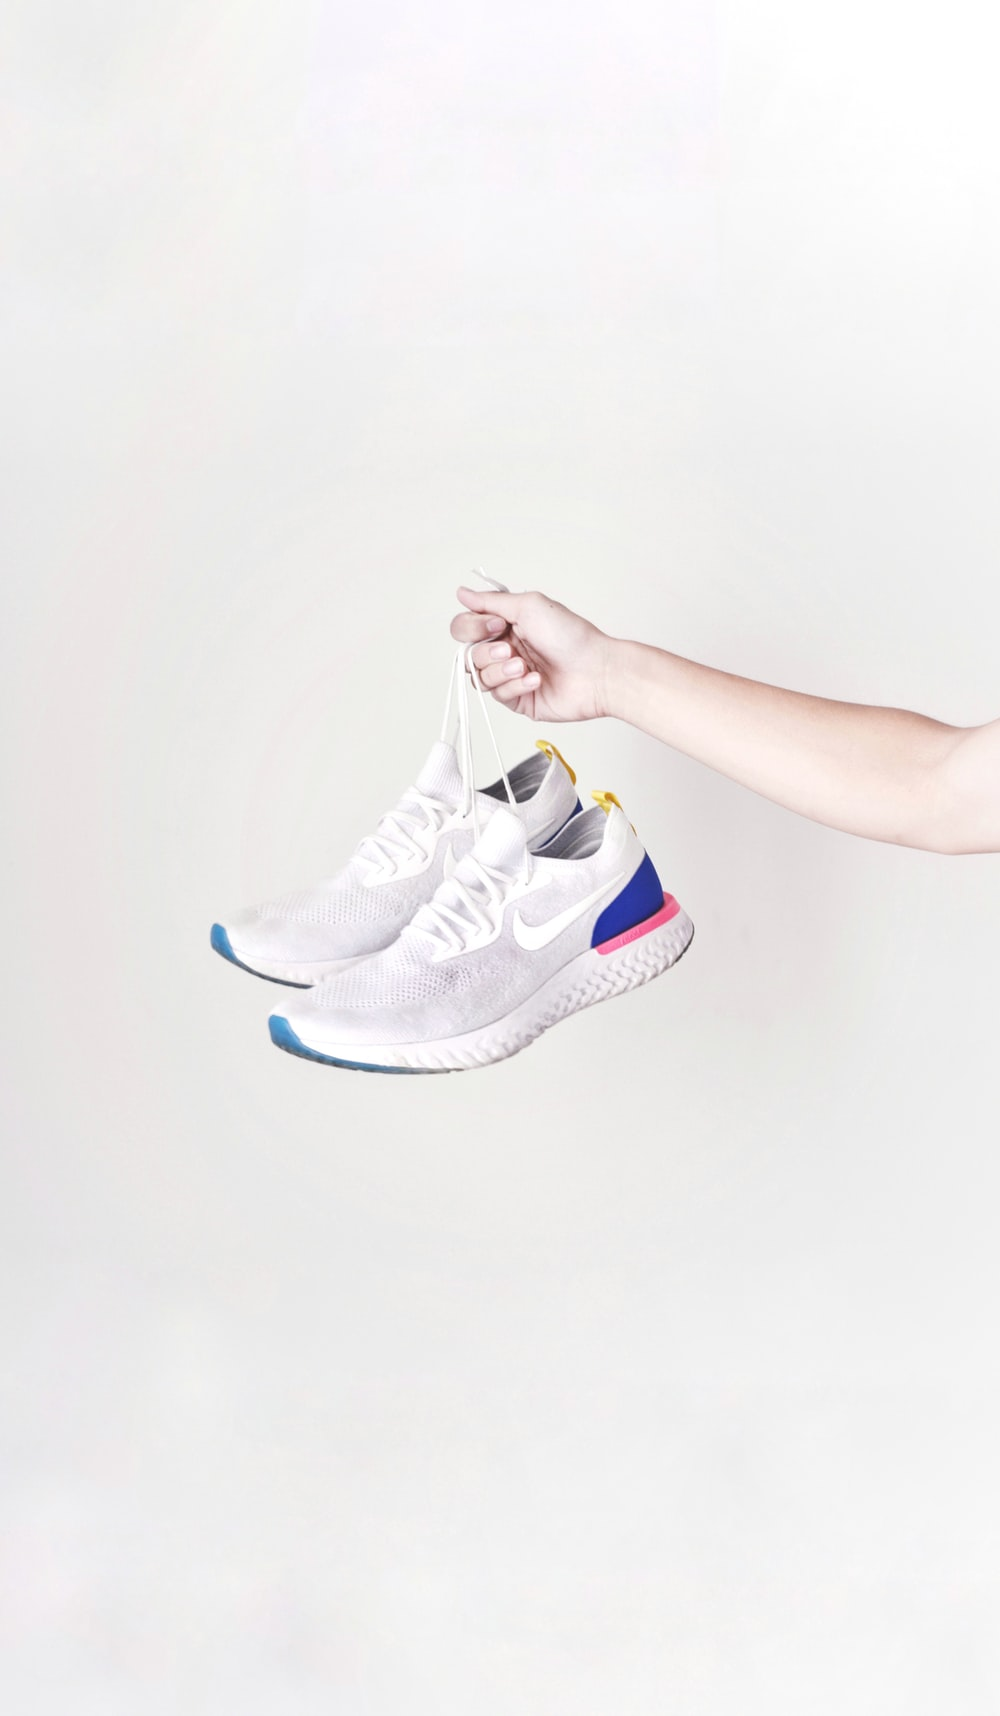 person holding Nike running shoes